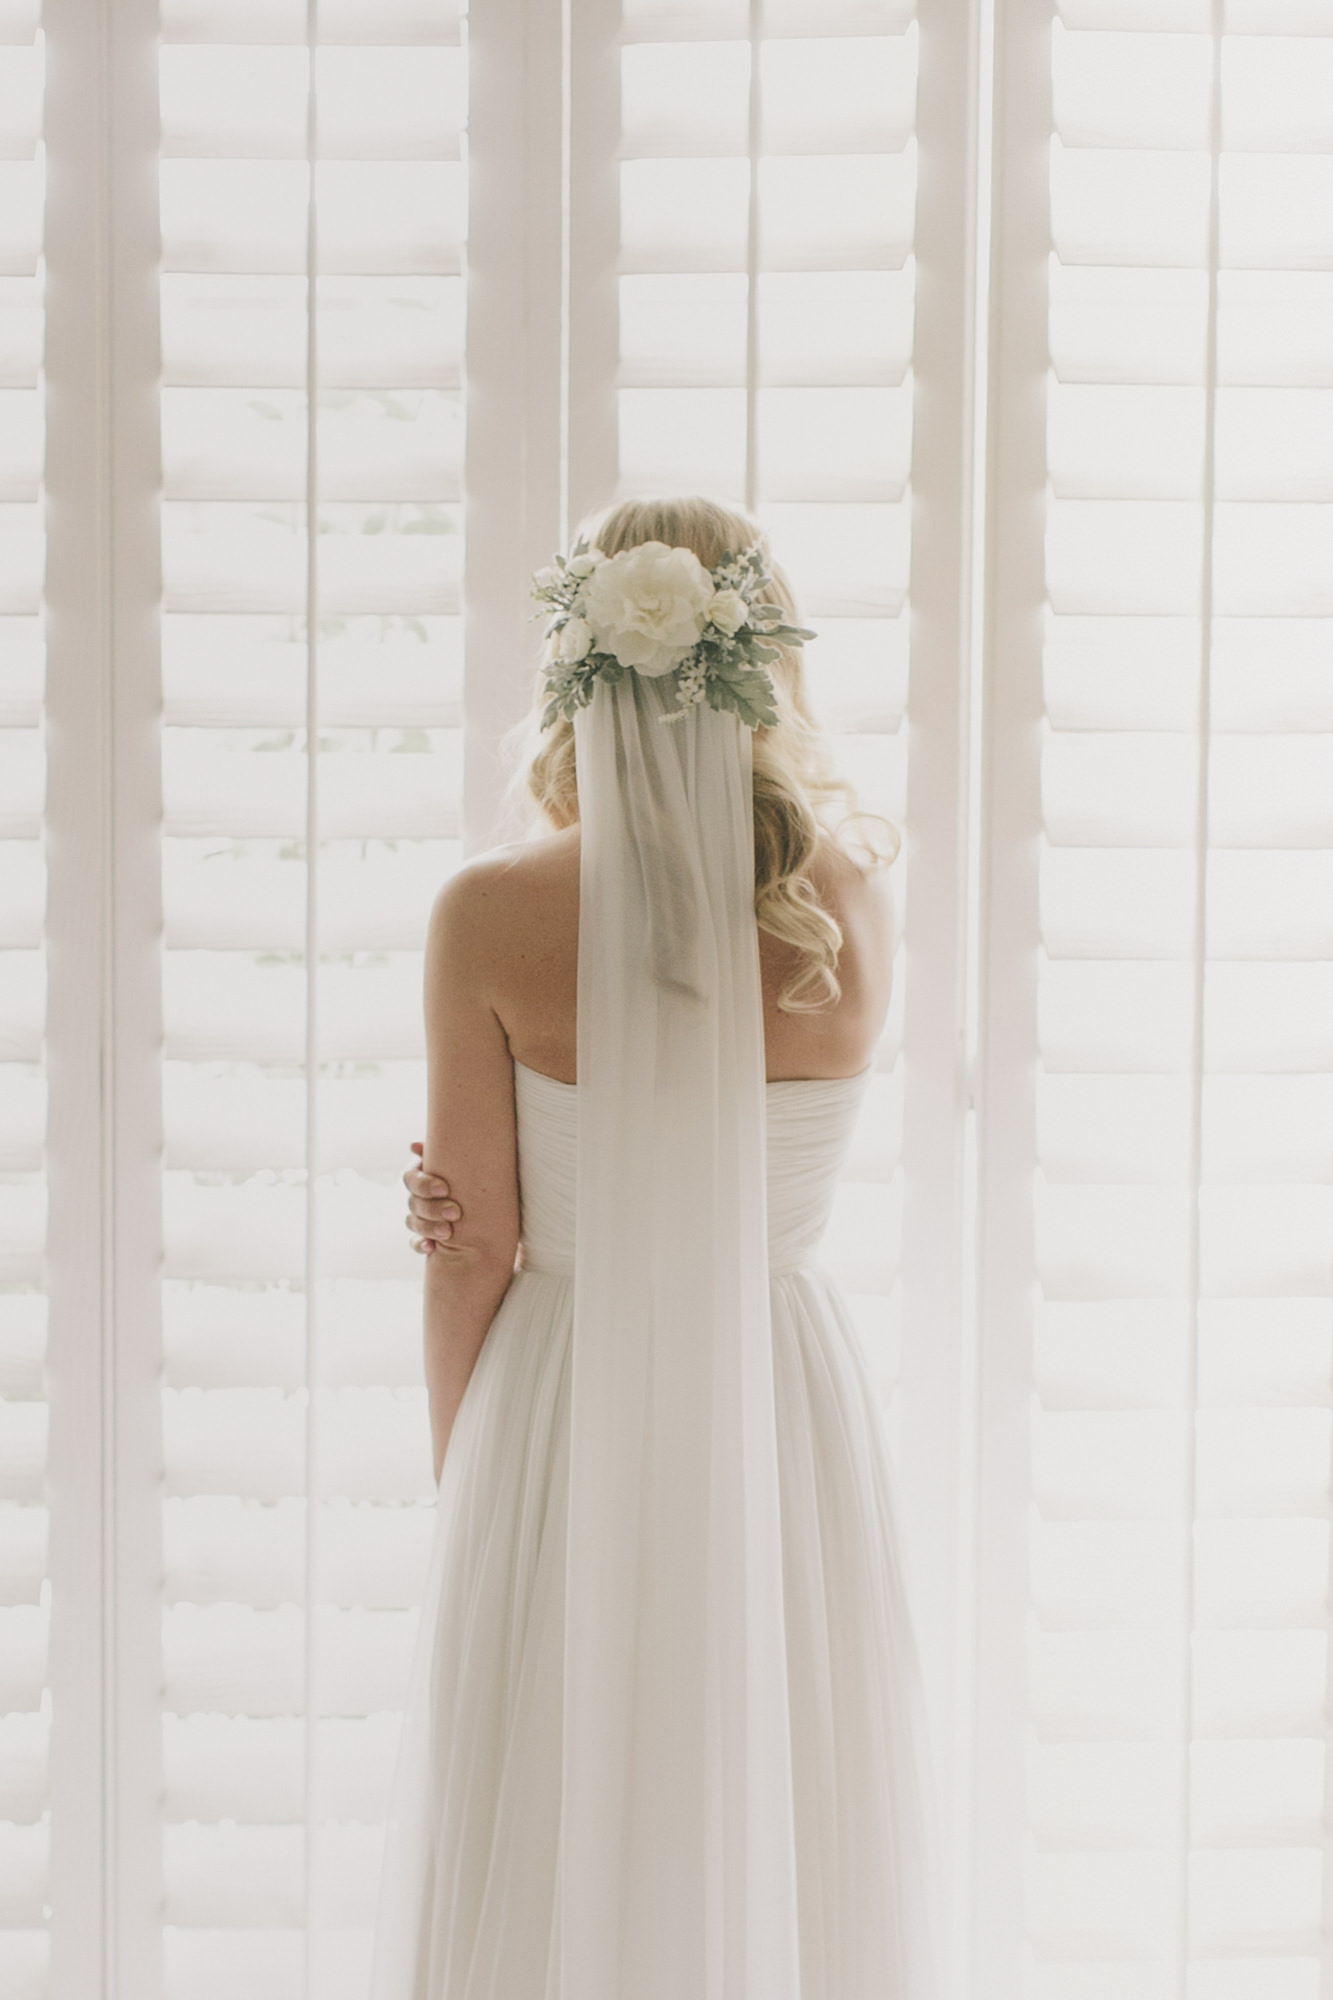 Bride with large white rose floral crown on veil - photo by James Moes